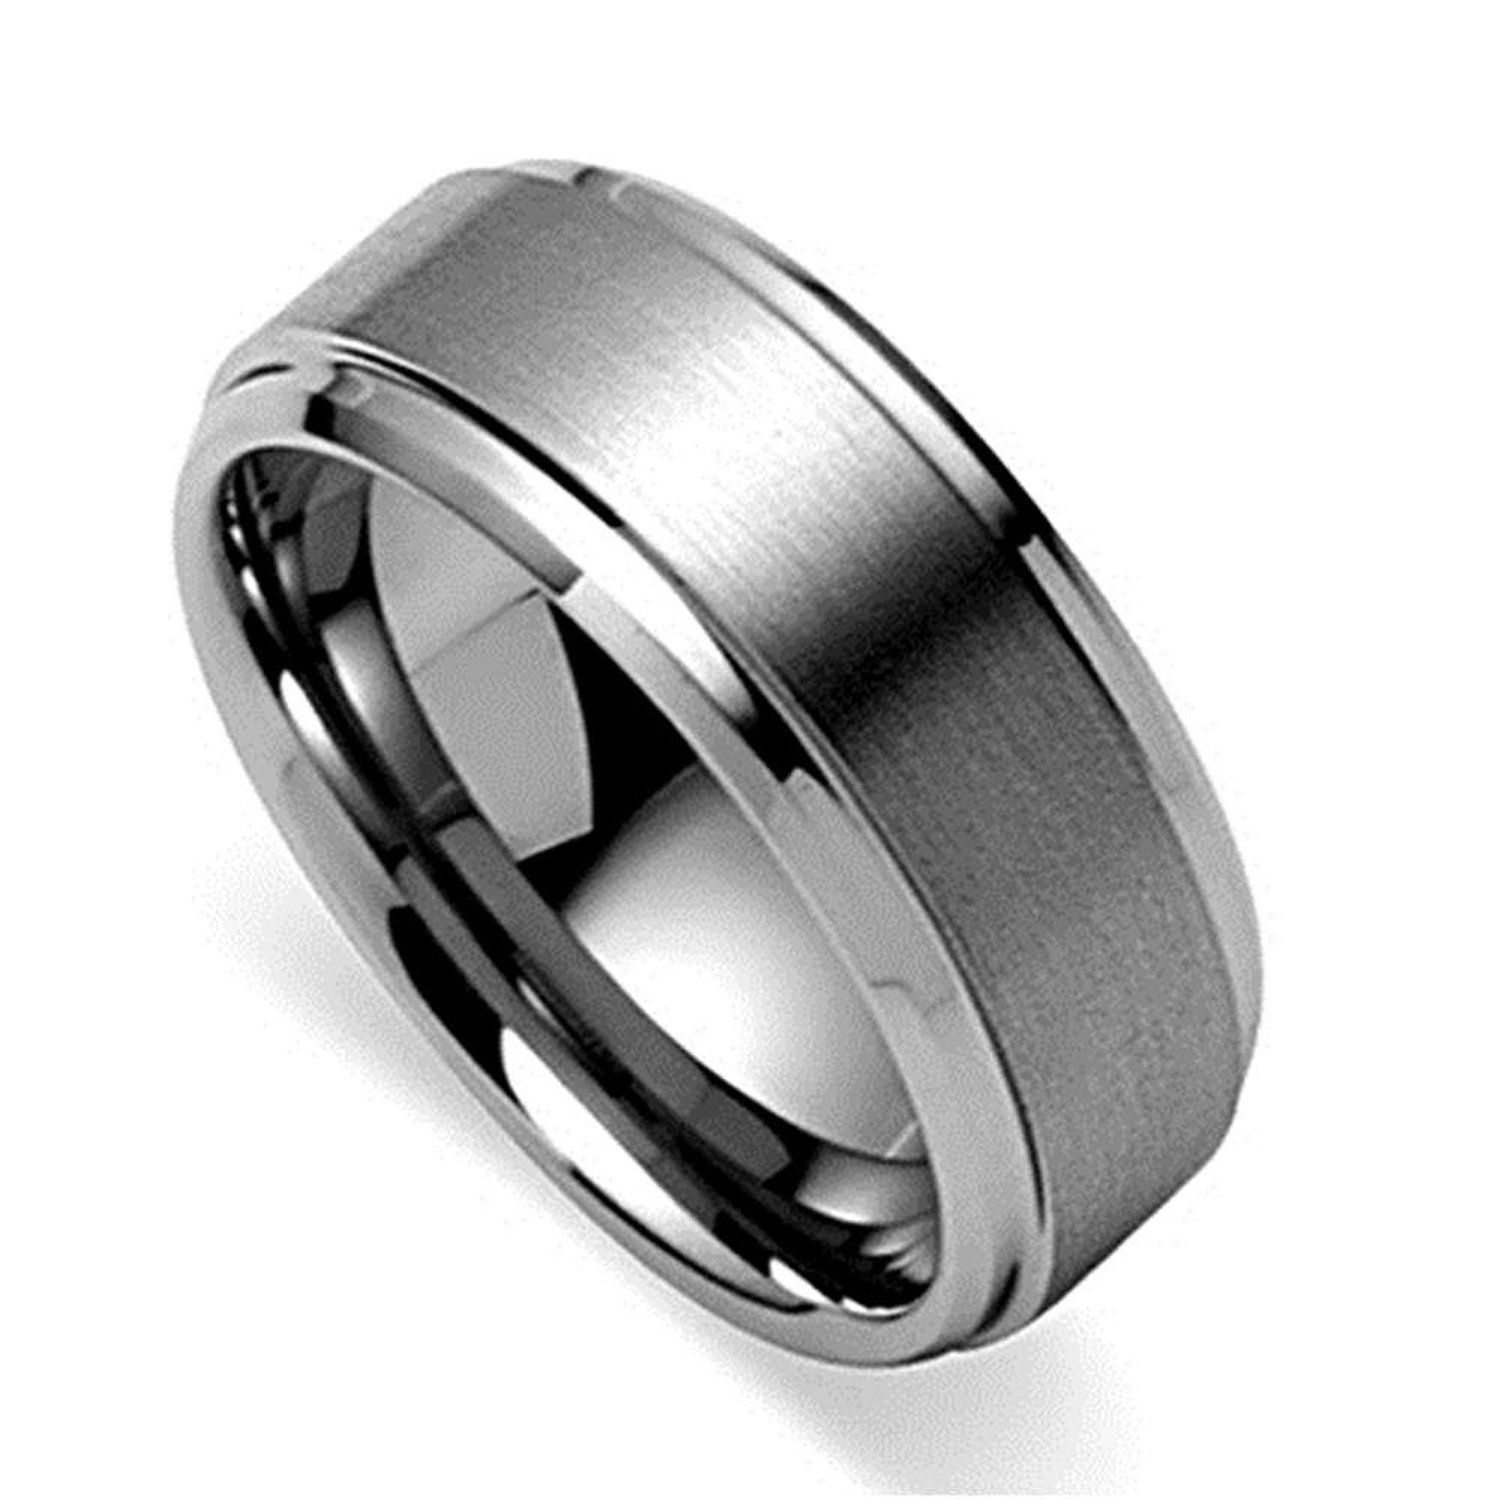 king will 8mm polished beveled edge matte brushed finish center mens tungsten ring wedding band - Tungsten Wedding Rings For Men